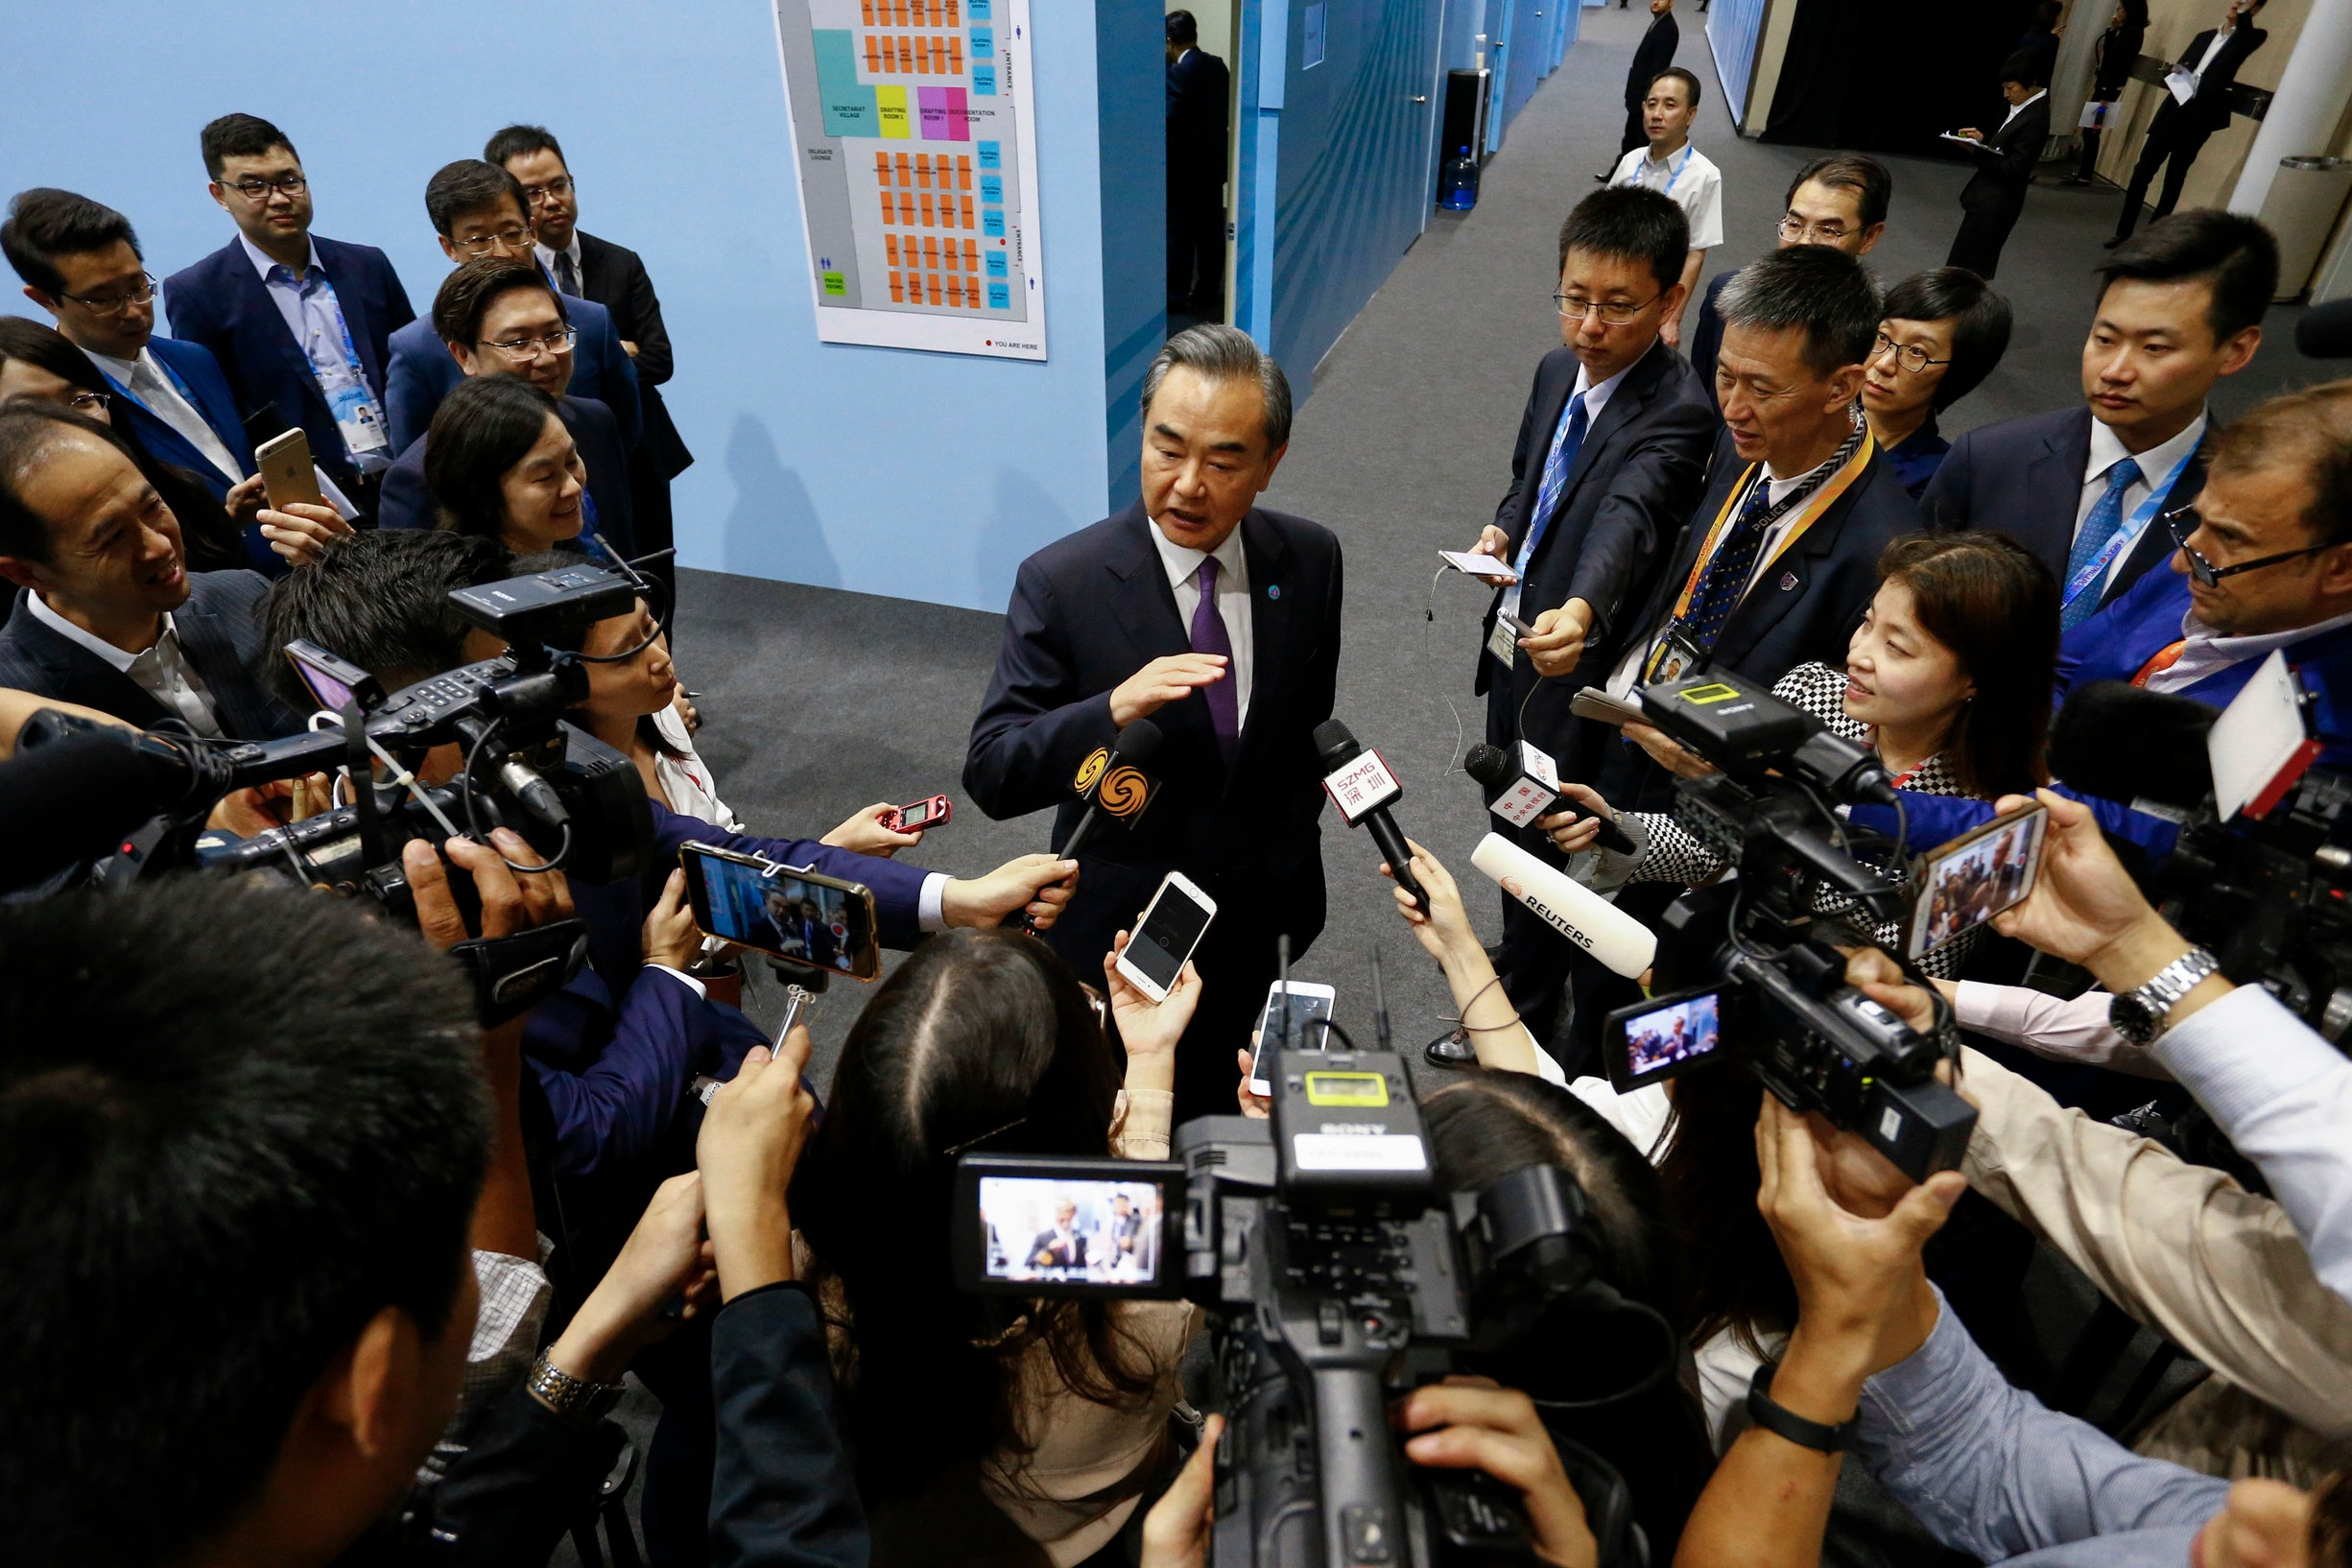 China's Foreign Minister Wang Yi speaks to reporters after a bilateral meeting on the sidelines of the ASEAN Foreign Ministers' Meeting in Singapore, August 3, 2018. REUTERS/Feline Lim